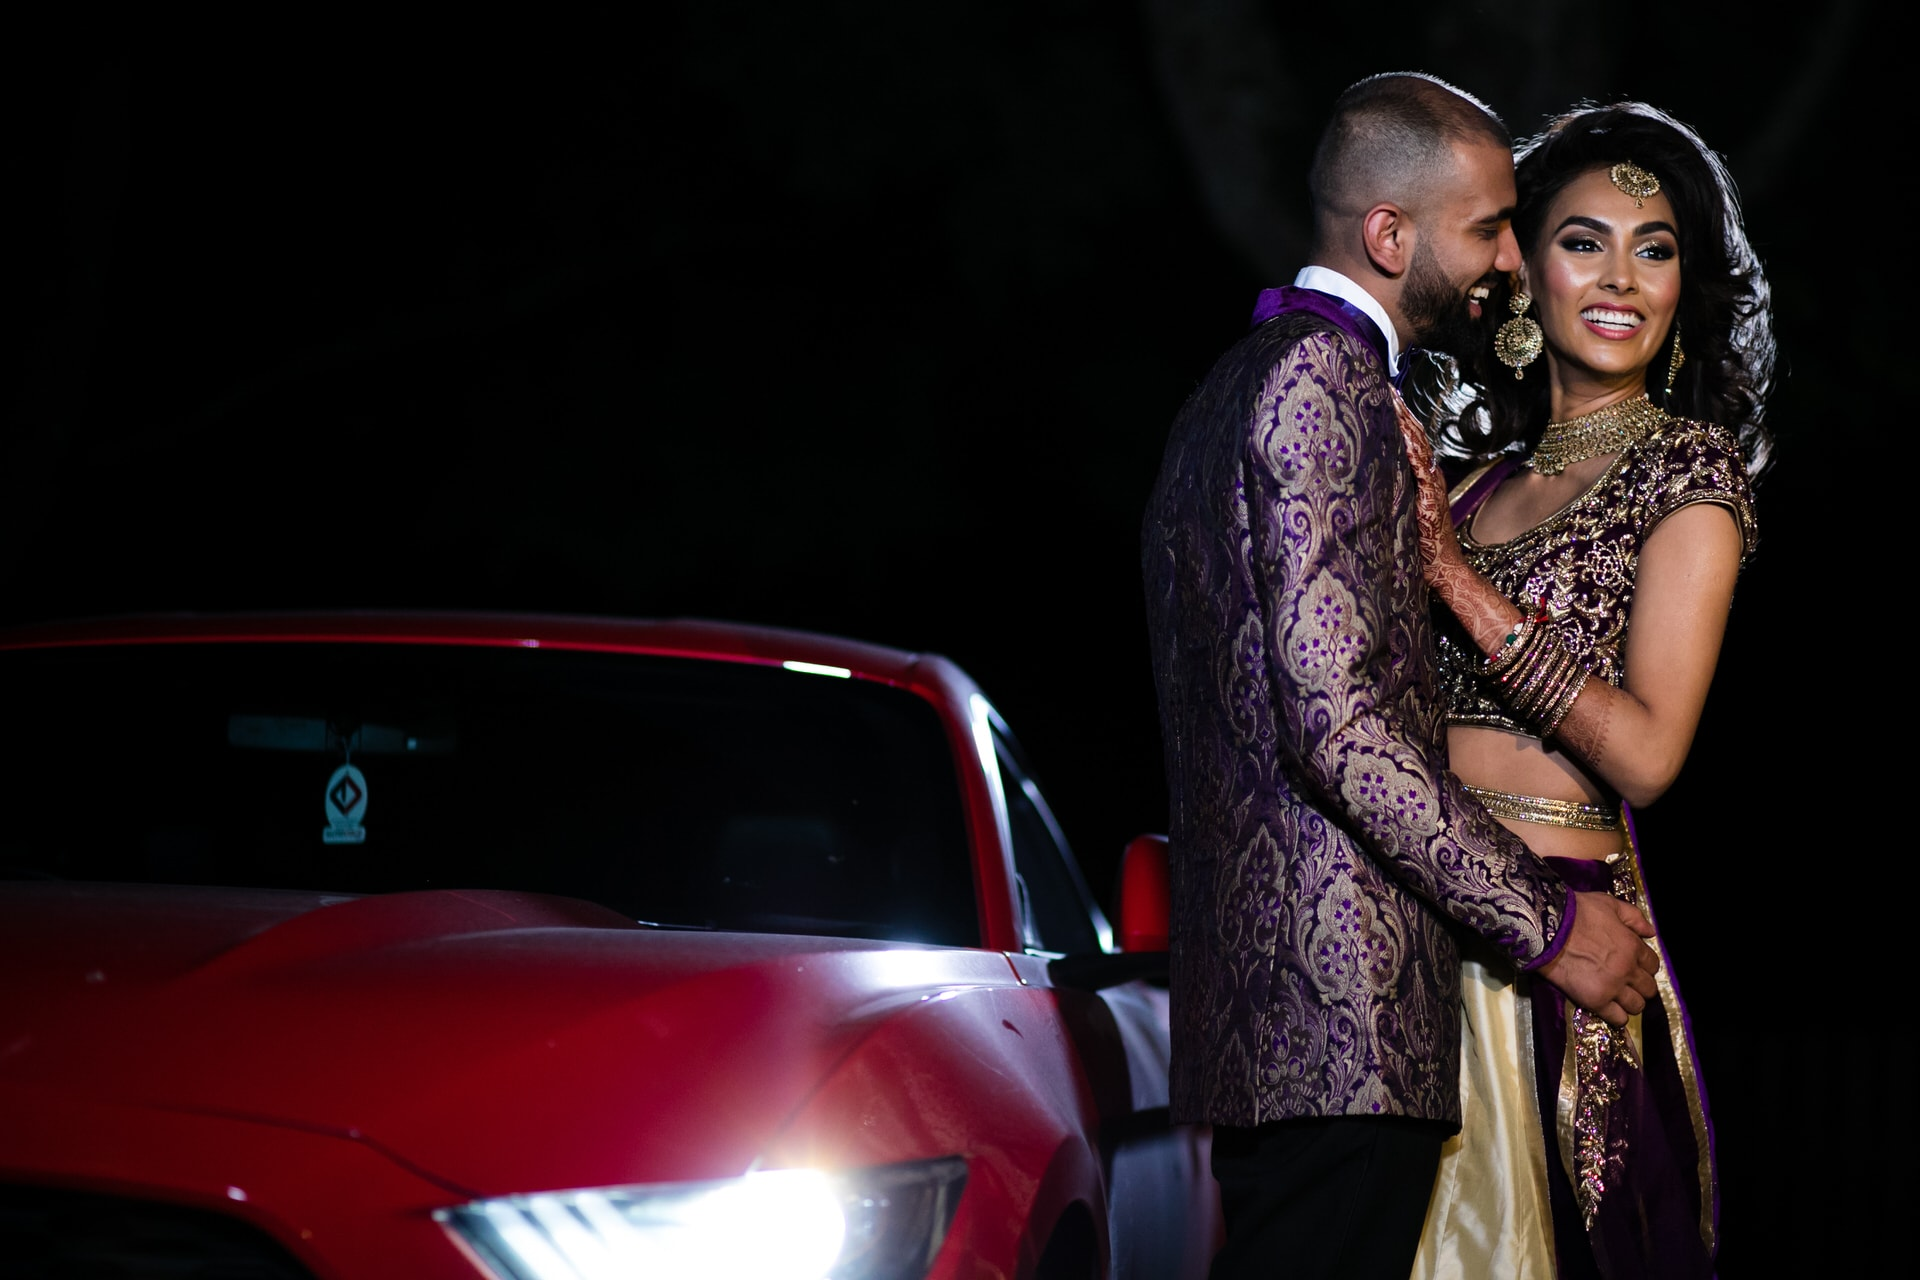 Indian Wedding portraits at Copthorne Effingham Park